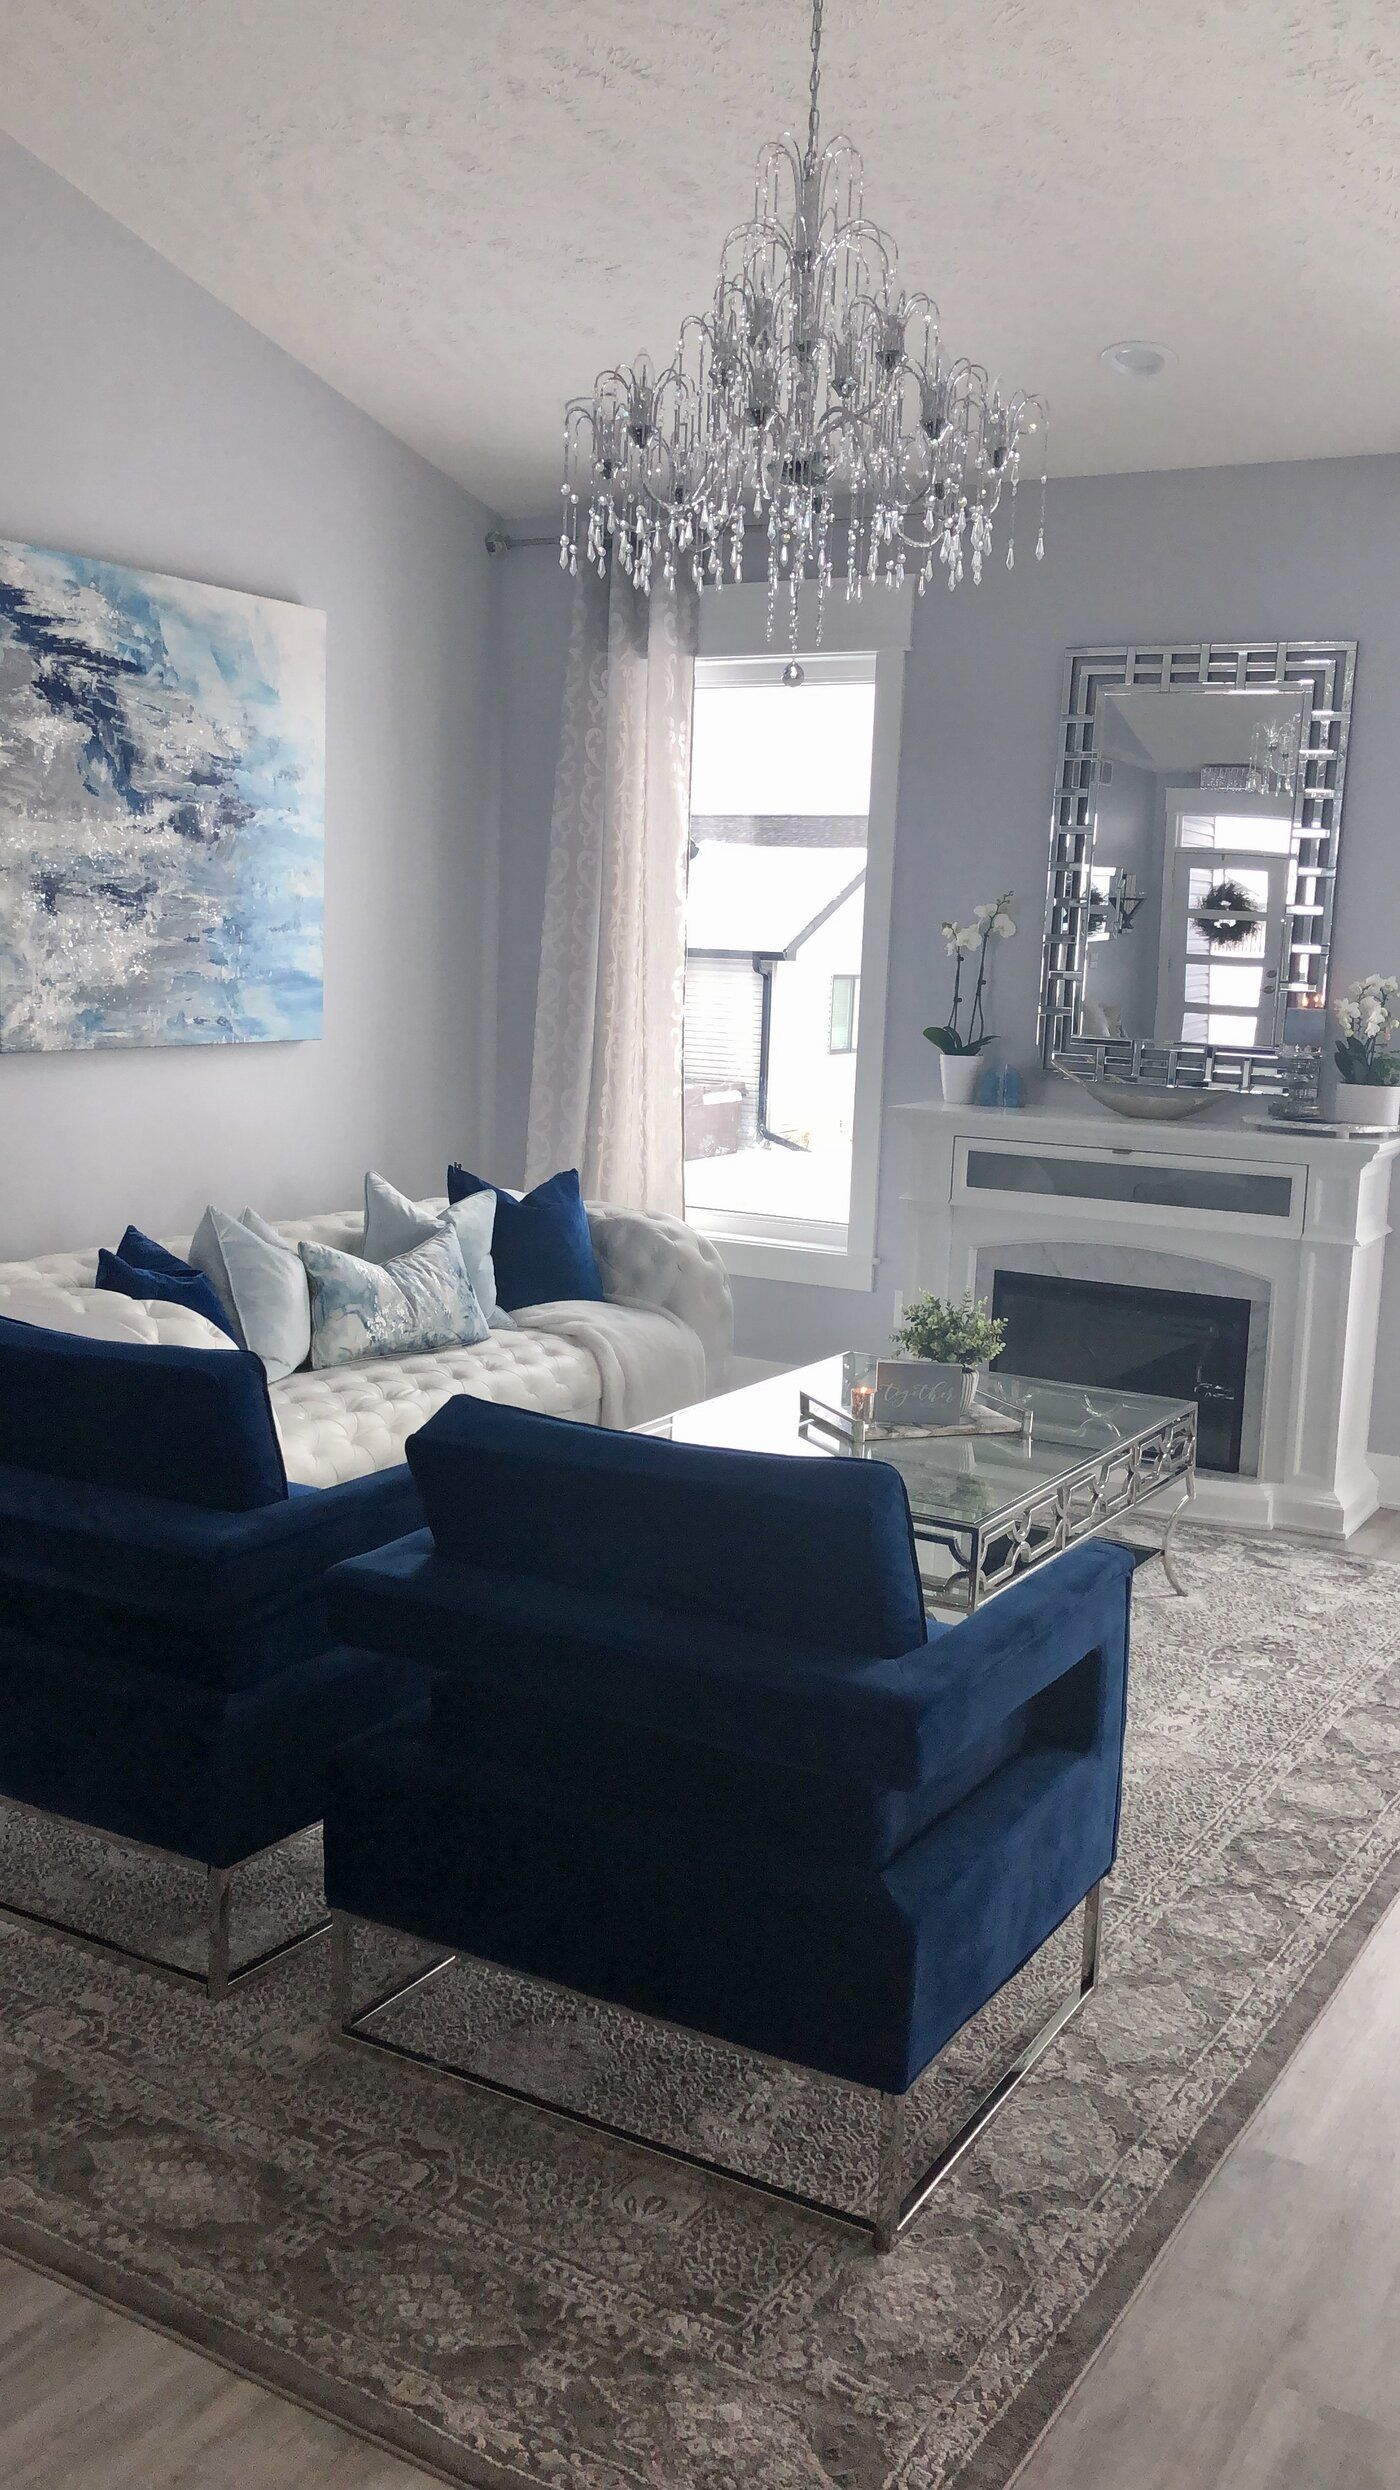 Tremendous Canterbury Lounge Chair In 2019 Glam Living Room Blue Machost Co Dining Chair Design Ideas Machostcouk